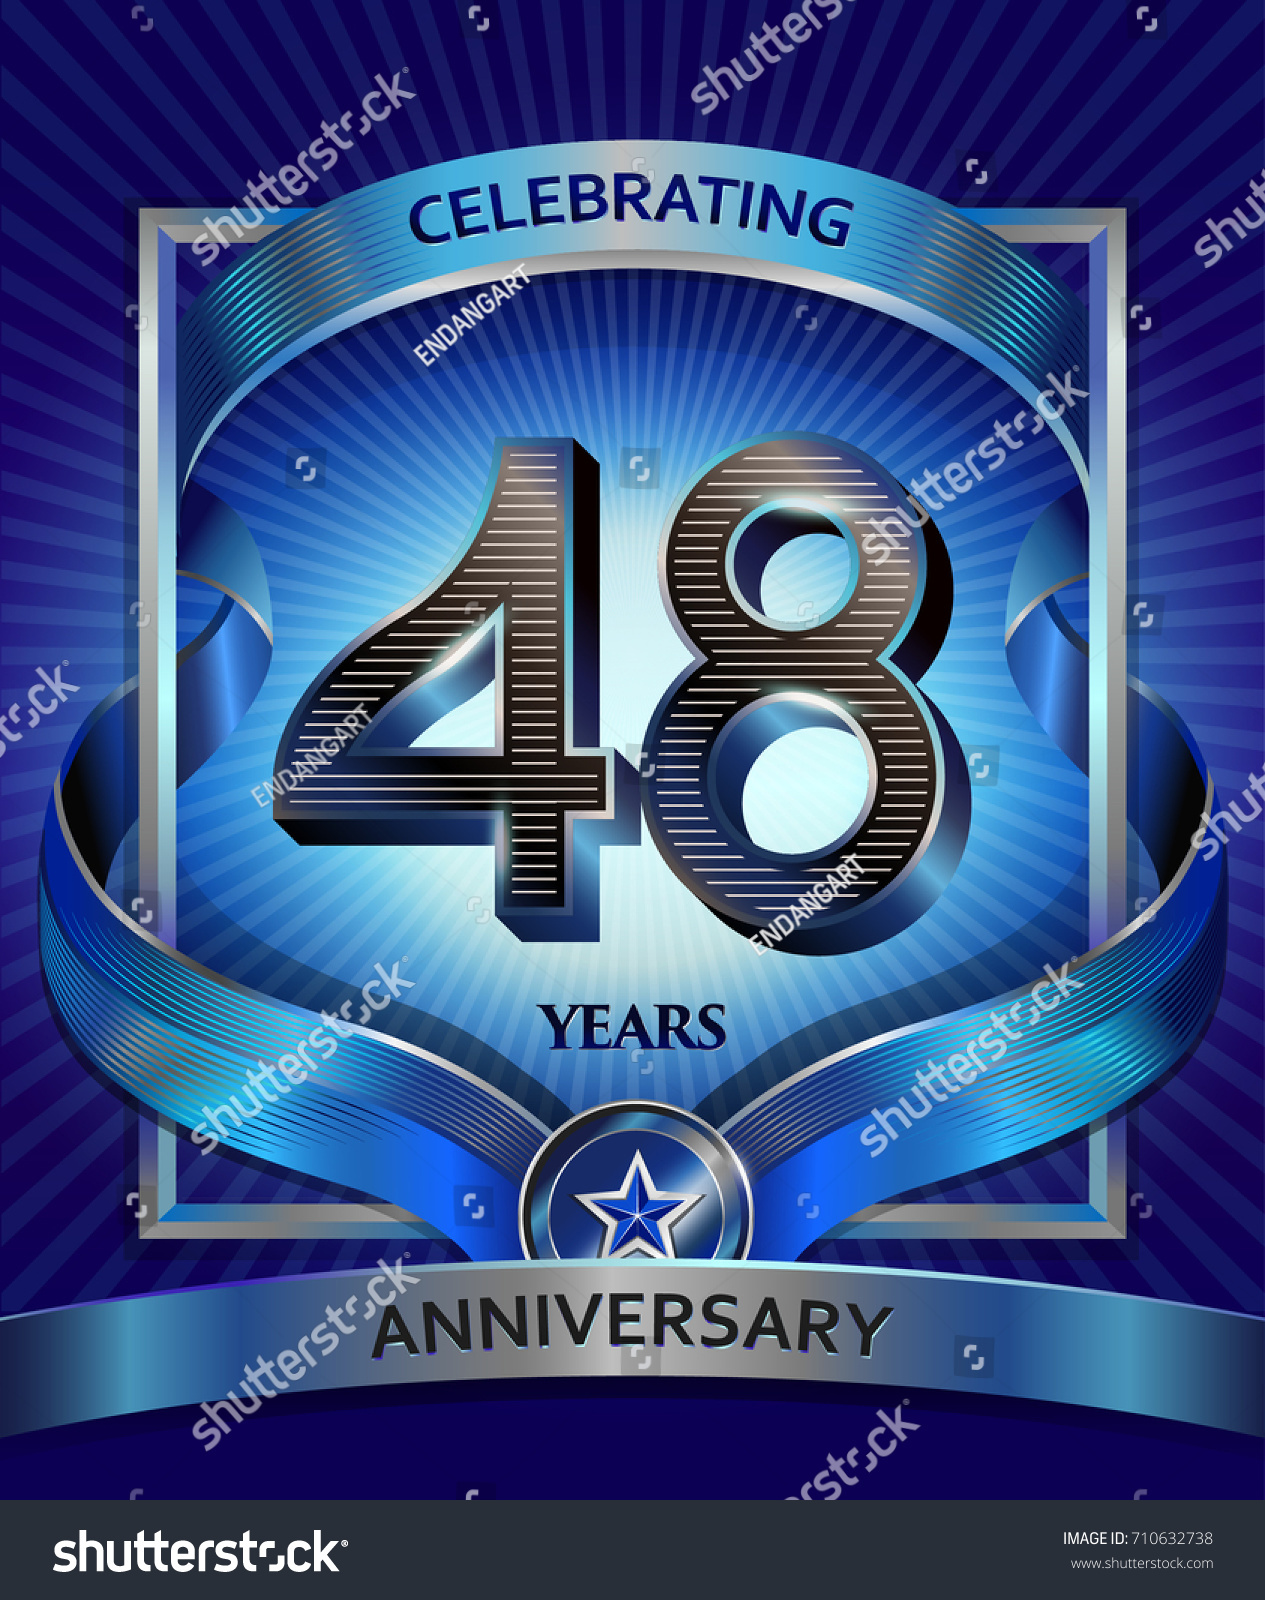 48 years anniversary design template invitation stock vector 48 years anniversary design template invitation stock vector 710632738 shutterstock stopboris Image collections